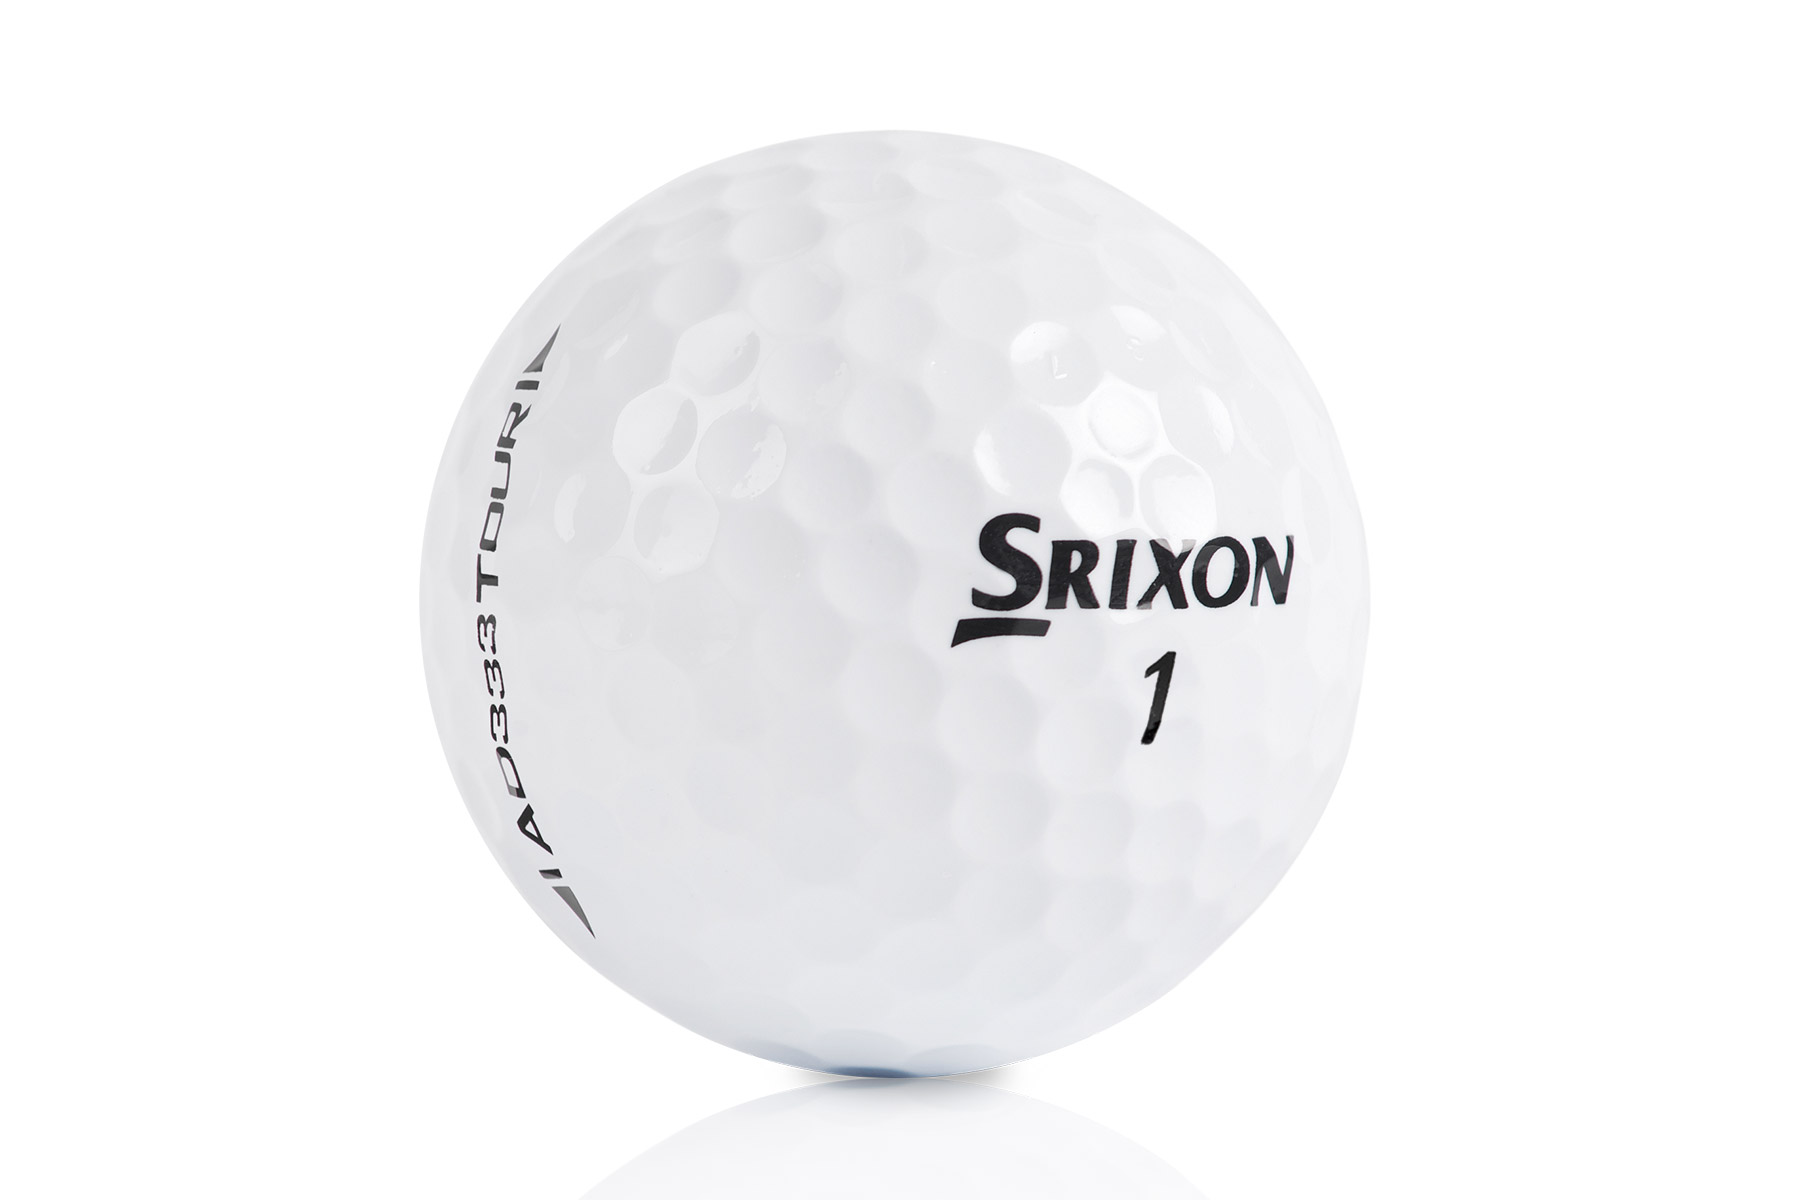 performance indicator golf balls Performance indicator case they had developed a ball that could change colors and let golfers know when a used golf ball suffered performance degradation.